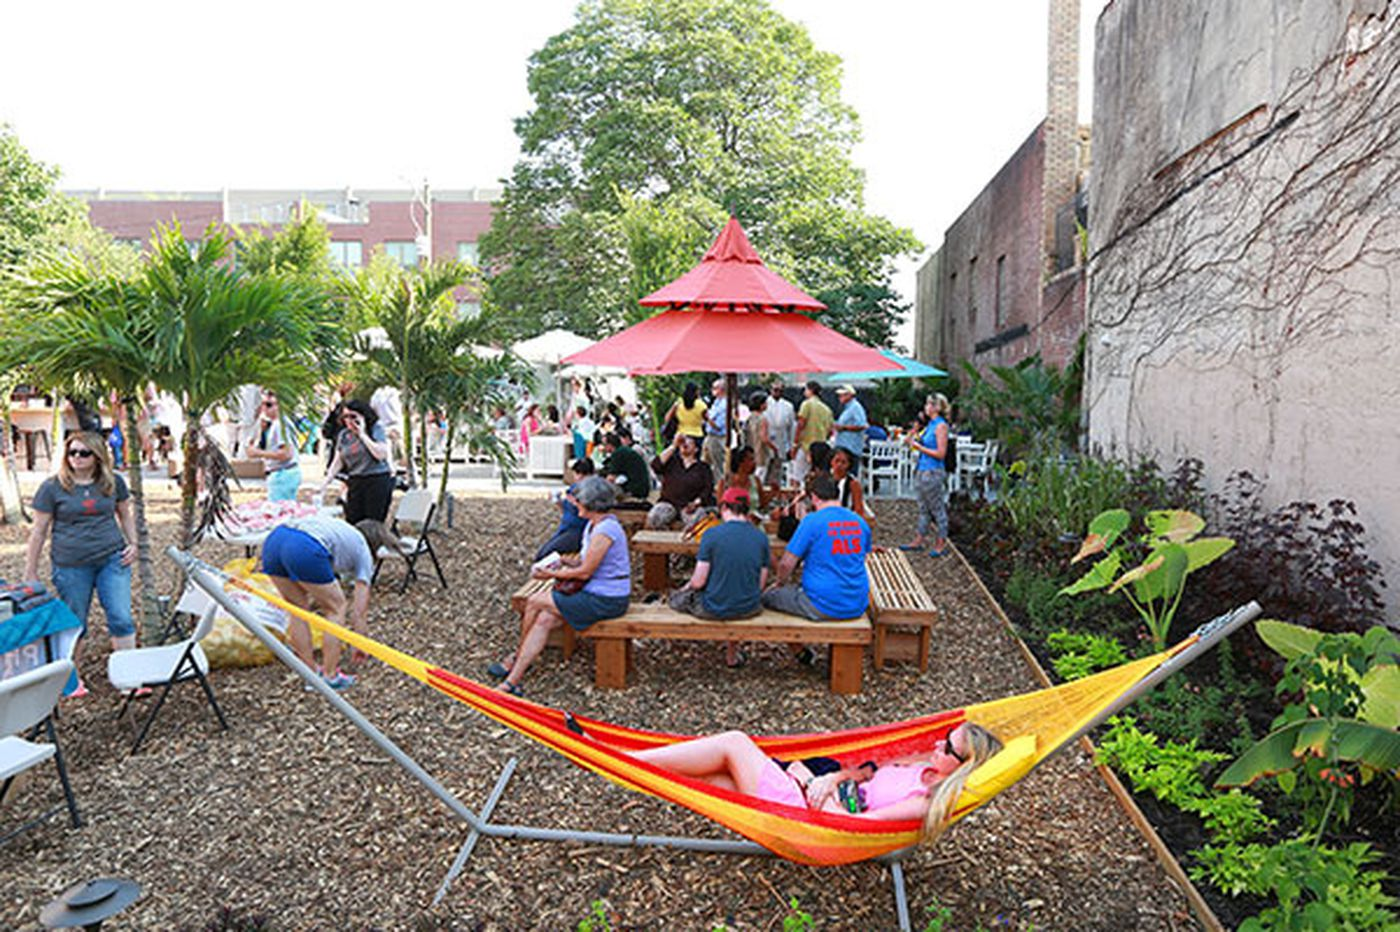 Pop-up gardens take advantage of LCB loophole